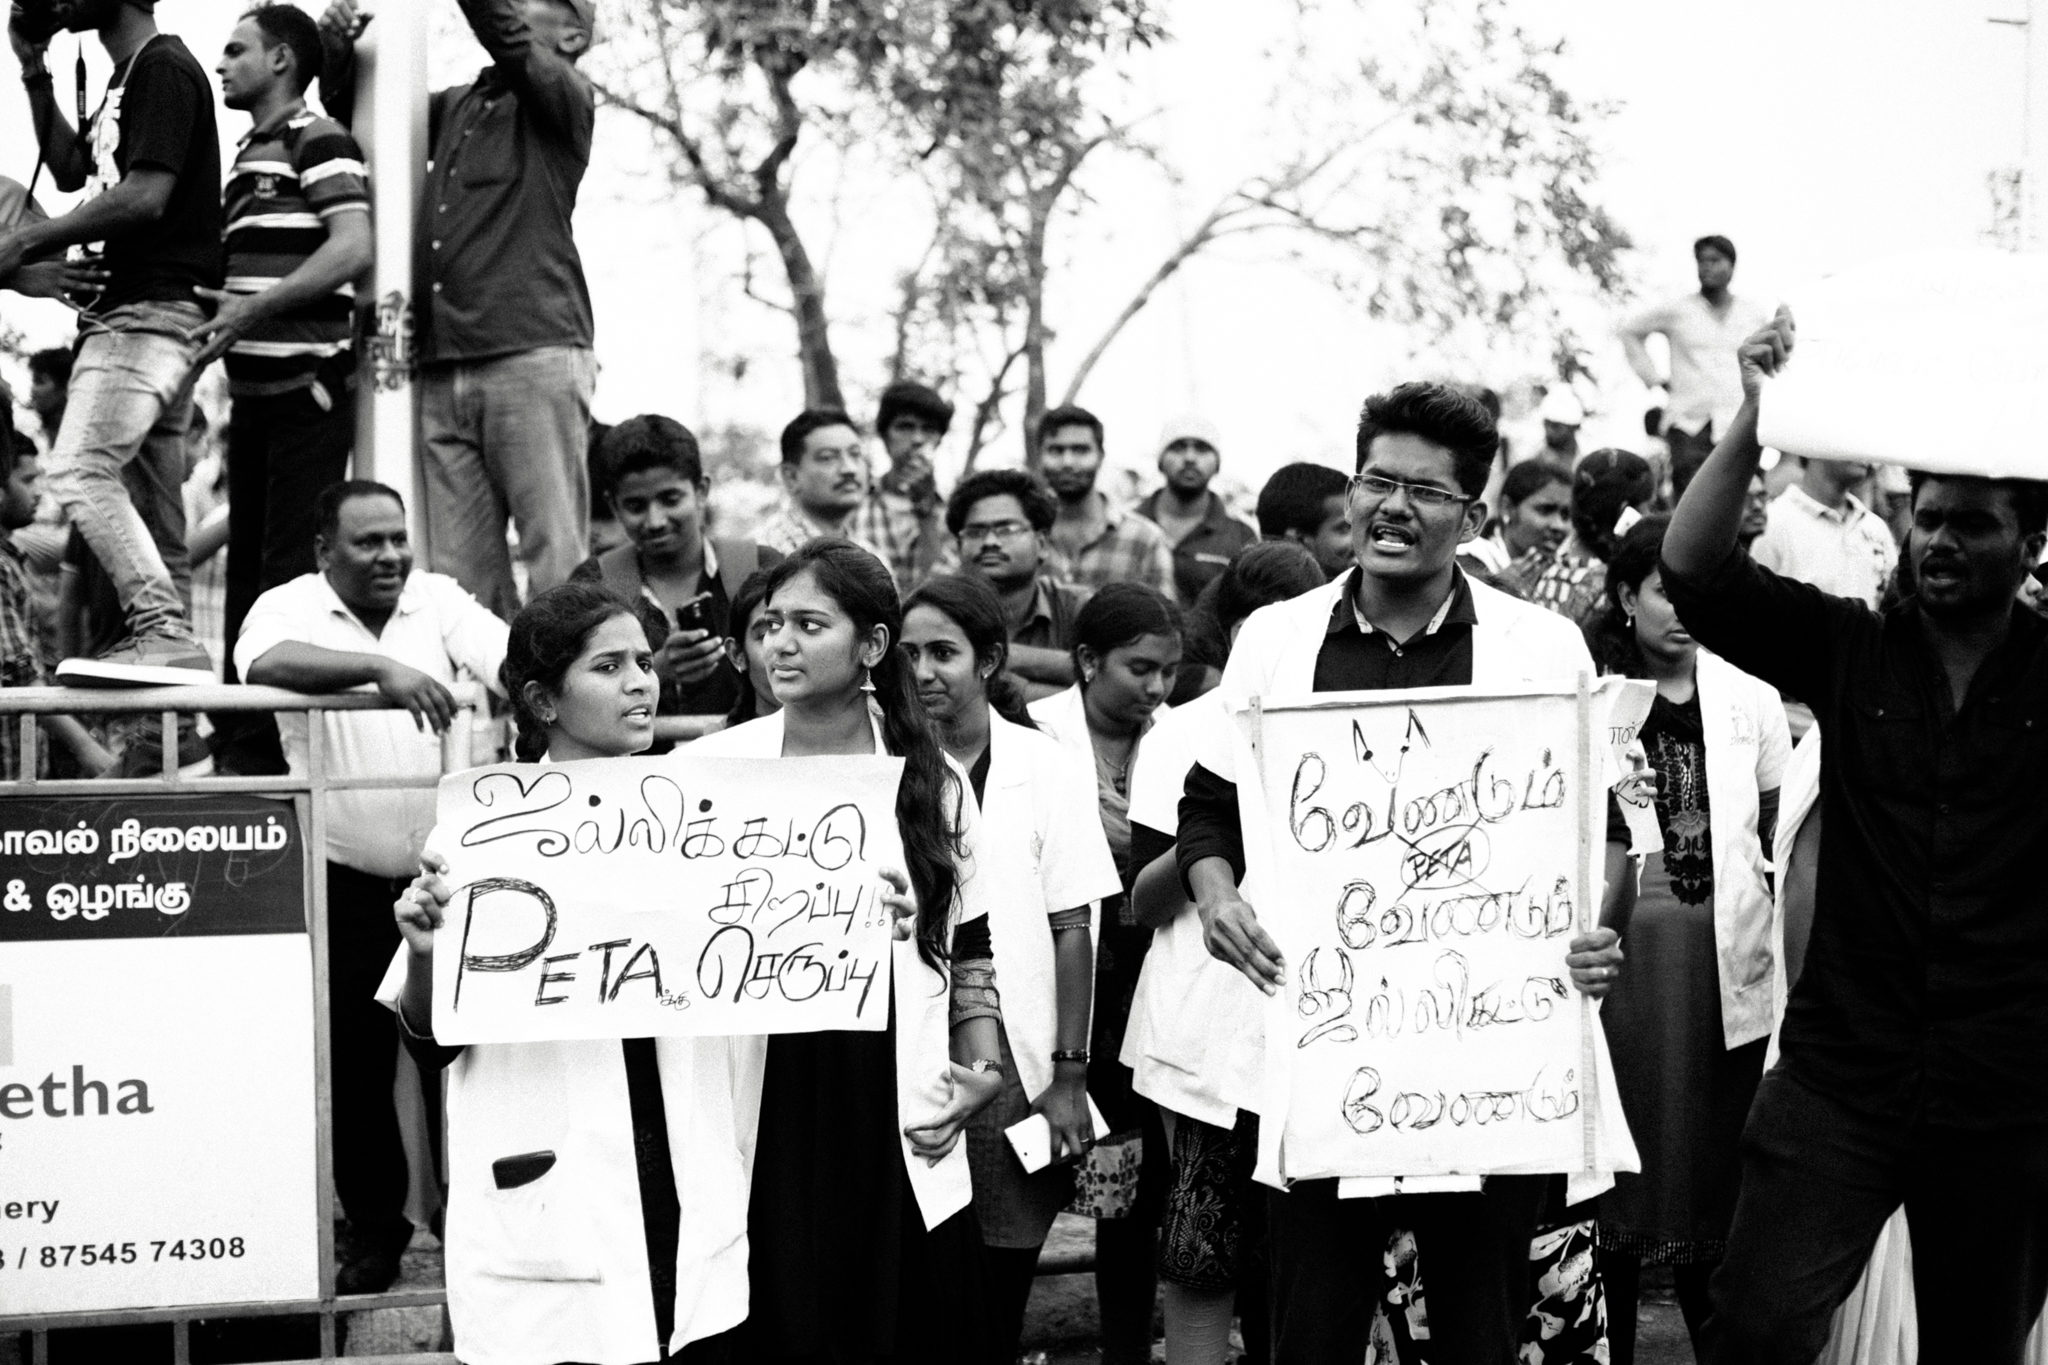 photo essay tamil nadu fought tooth and nail for the right to vinay aravind